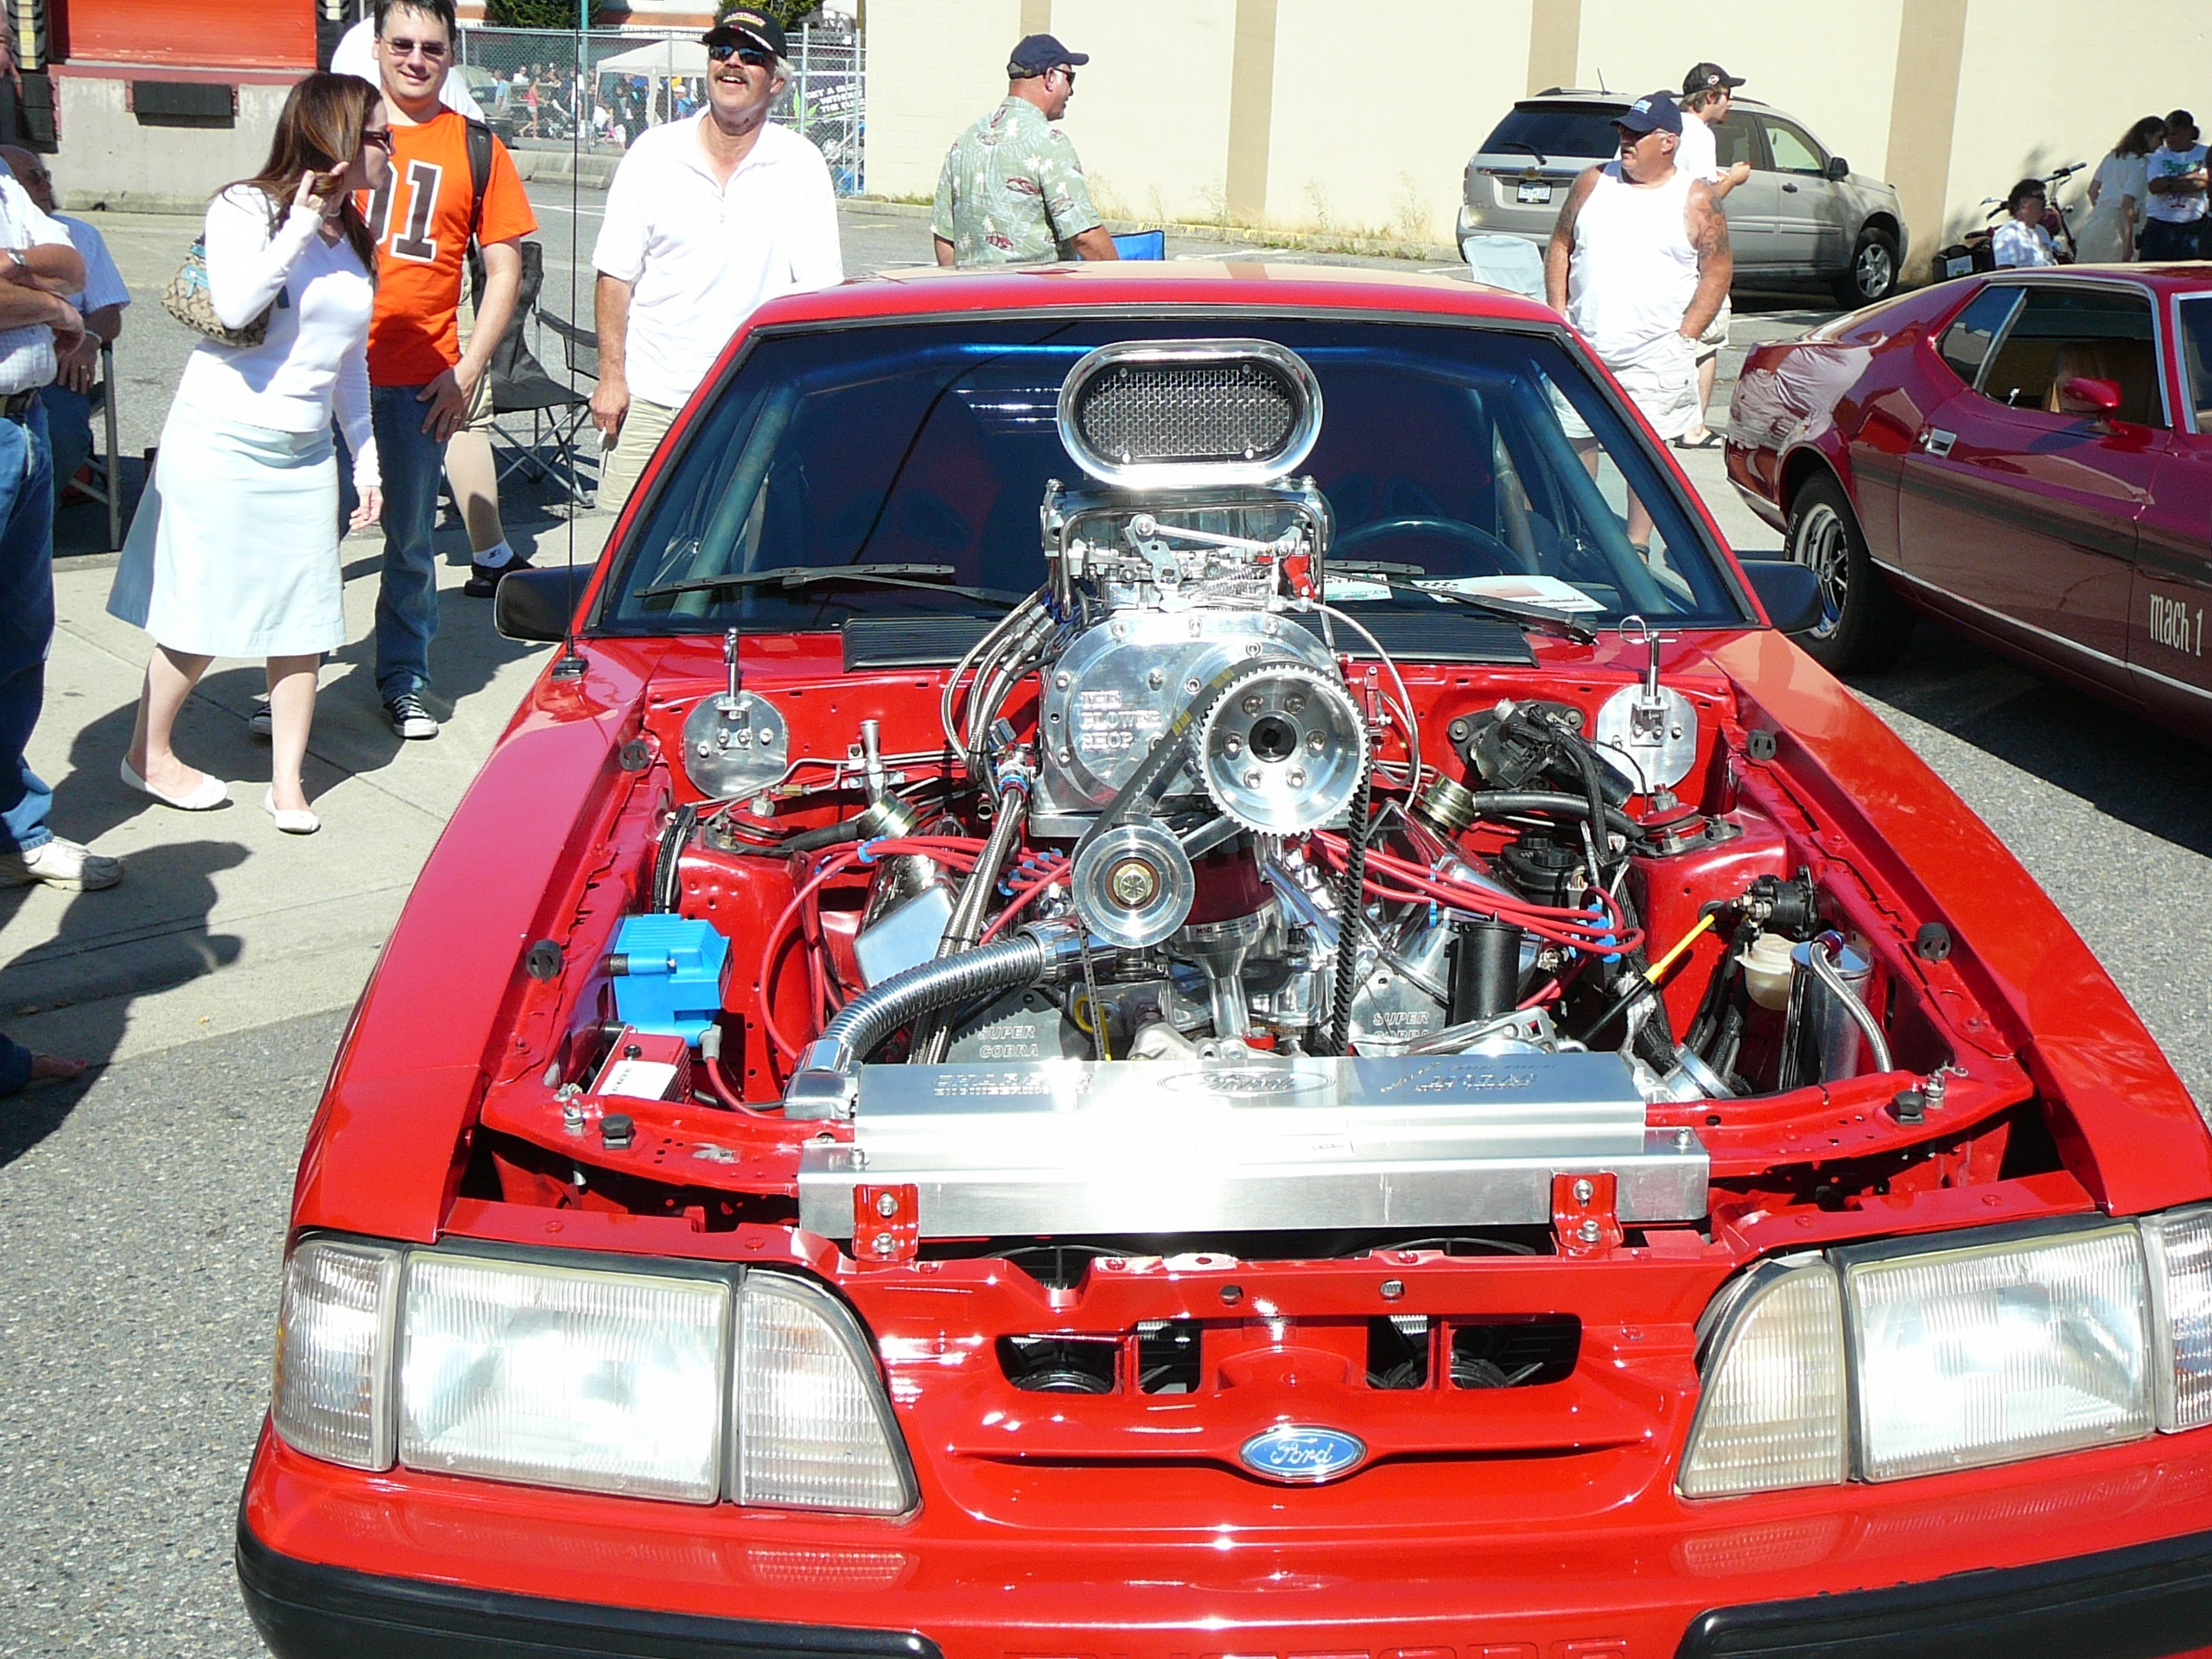 BlownStang514's 1990 Ford Mustang